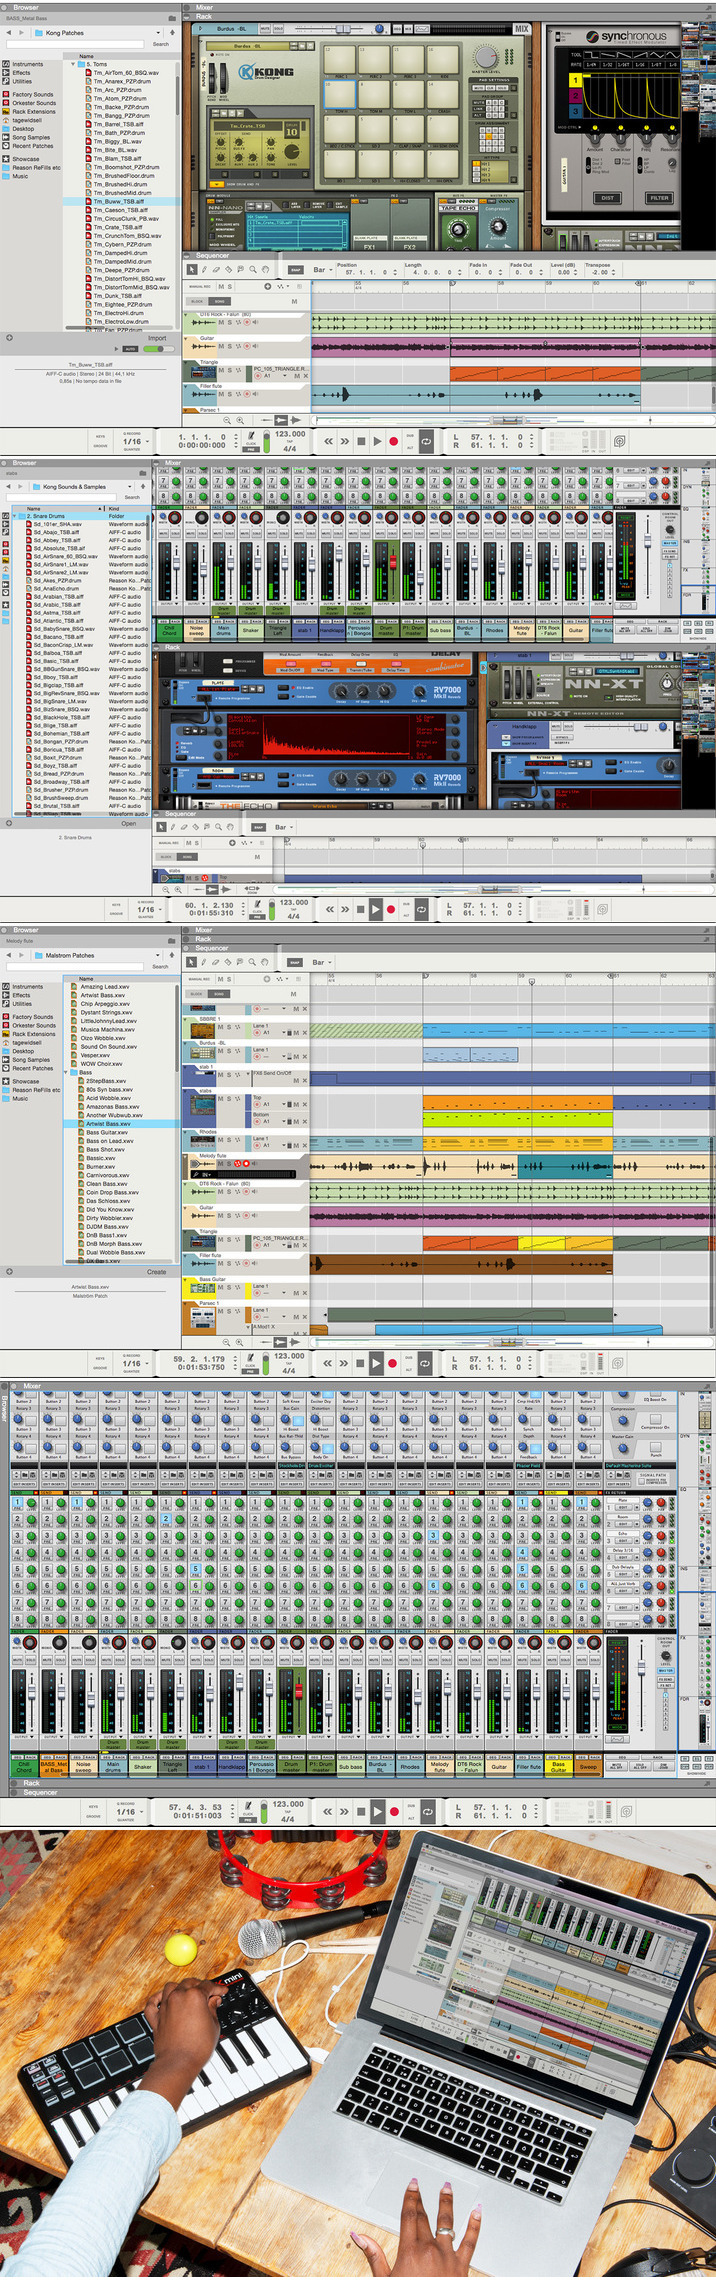 download propellerhead reason 8 keygen